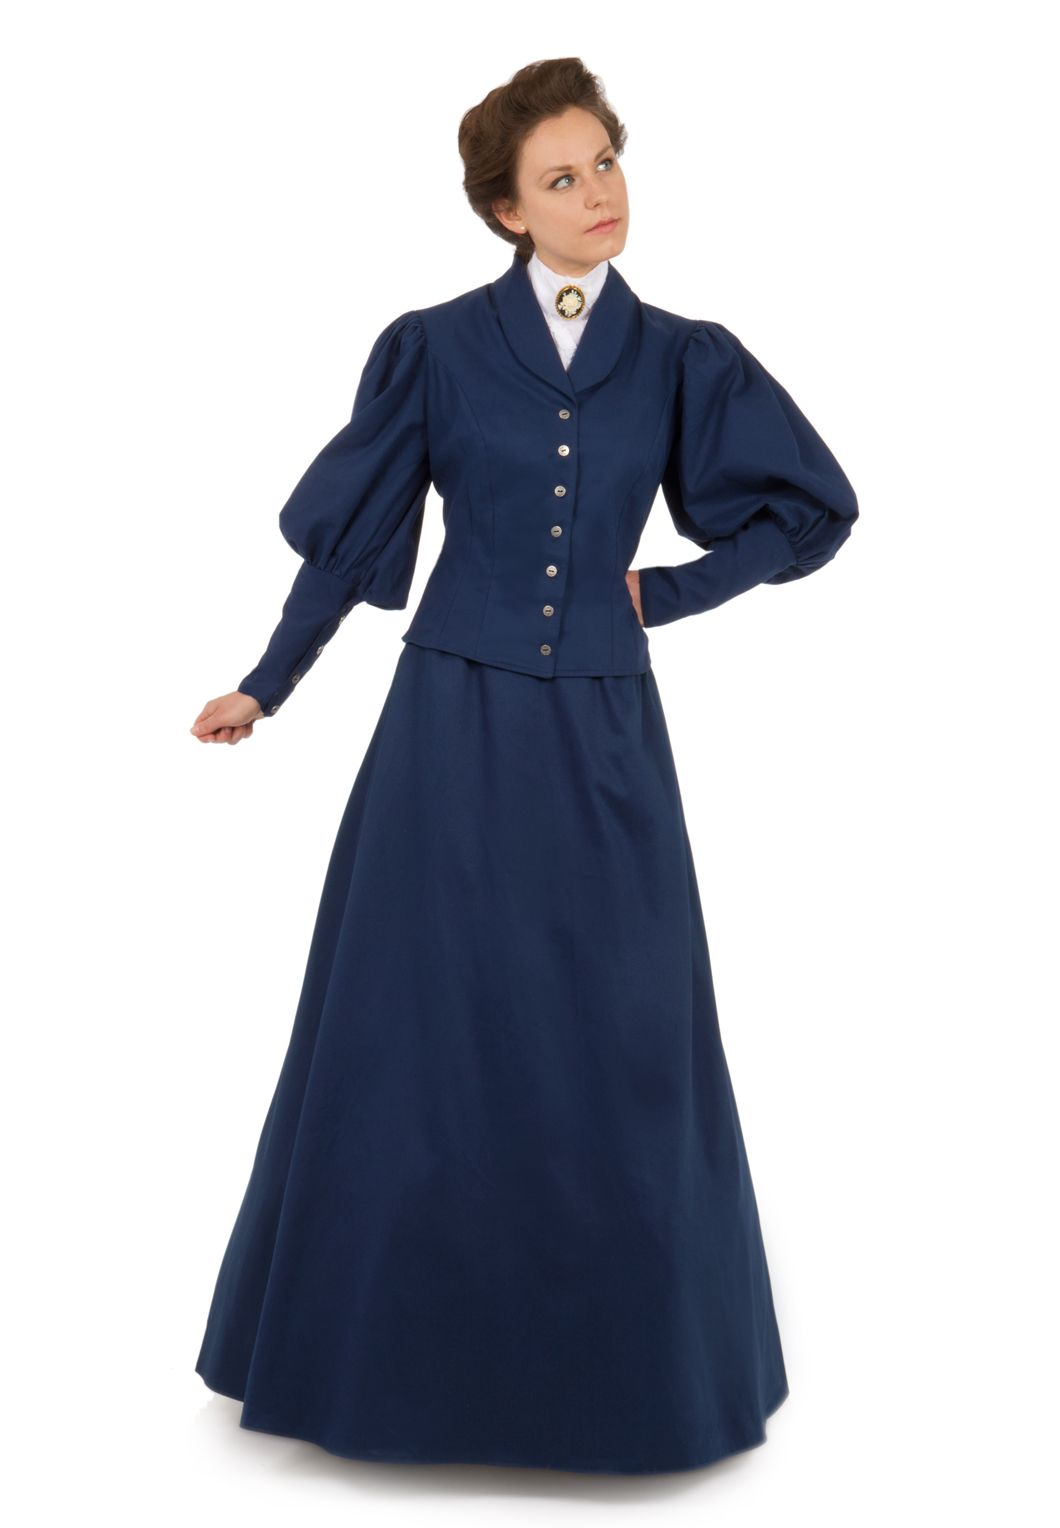 Victorian Twill Suit By Recollections